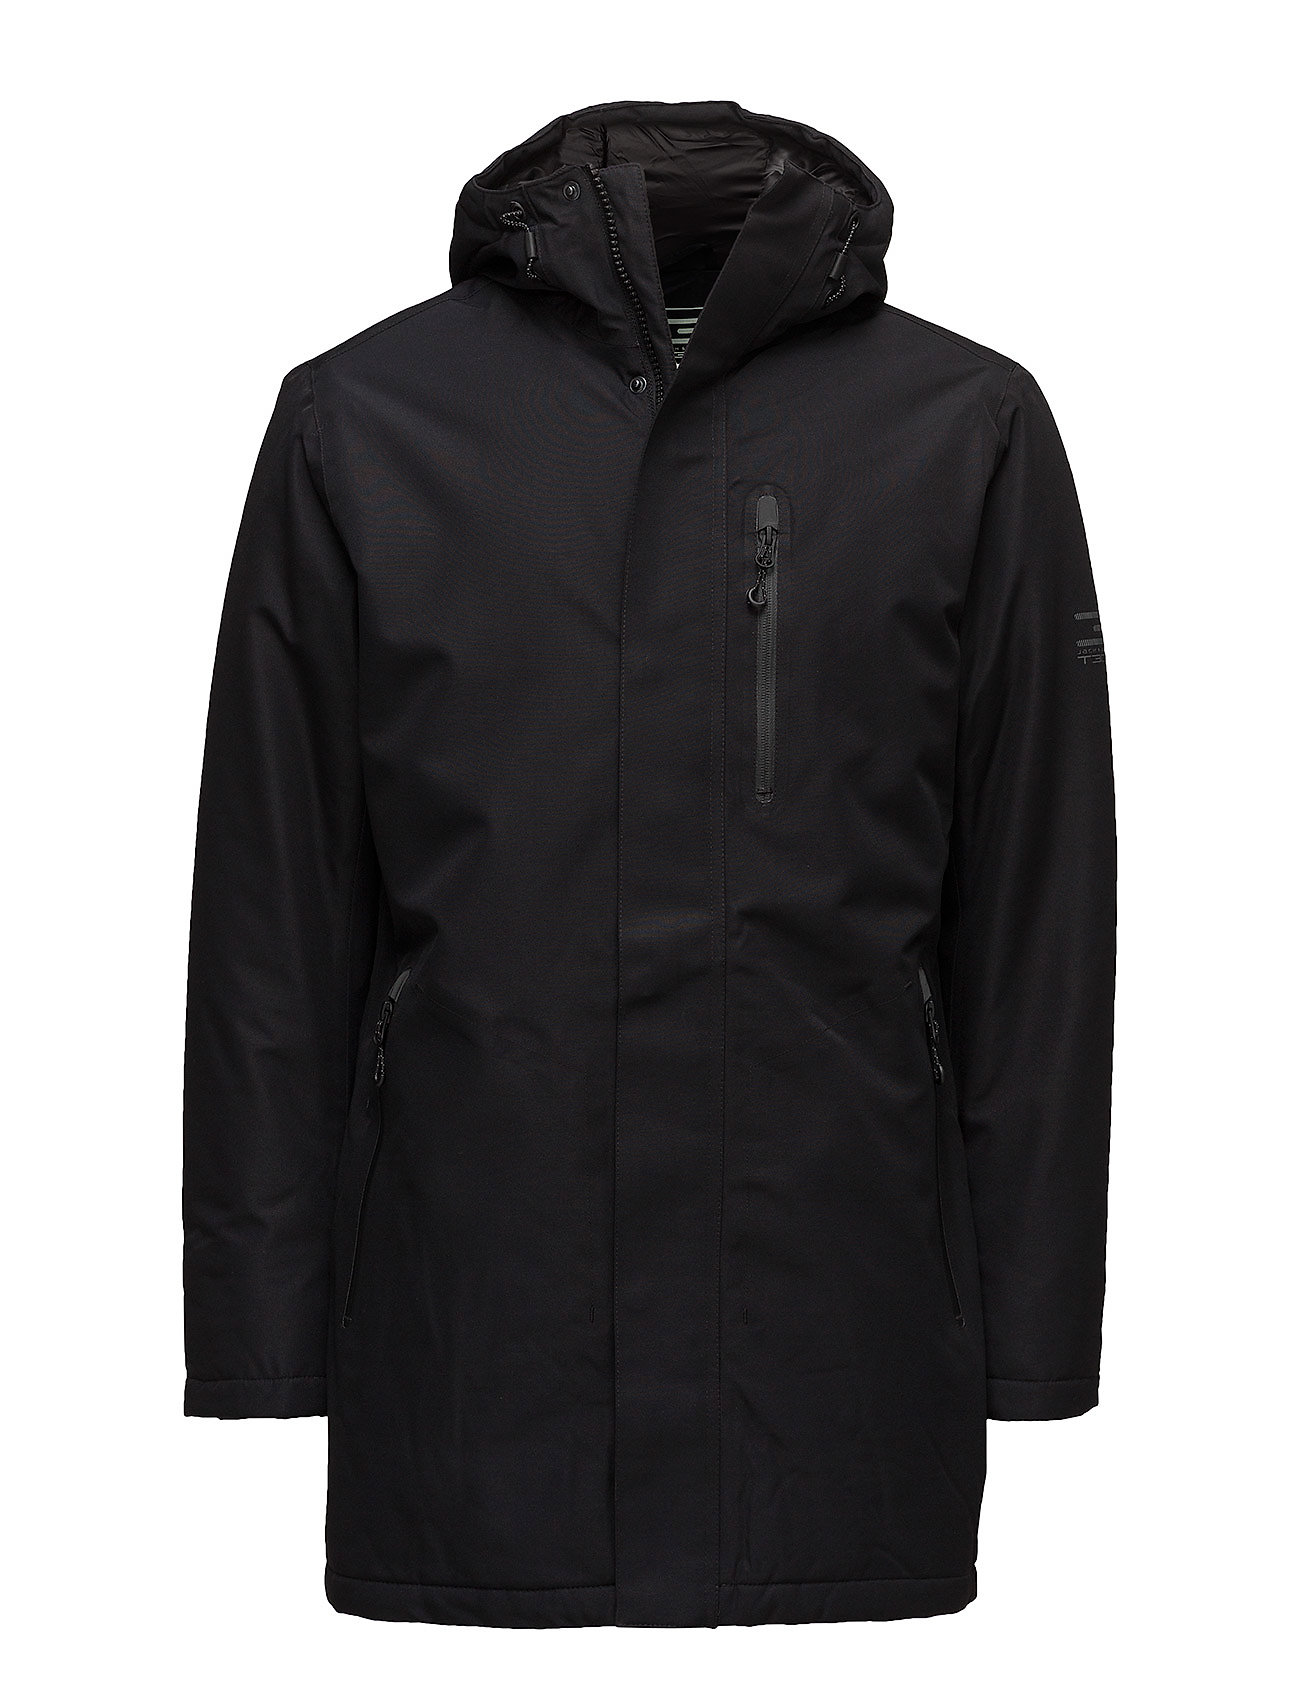 jack & jones tech – Jjtnorthpoint parka jacket på boozt.com dk